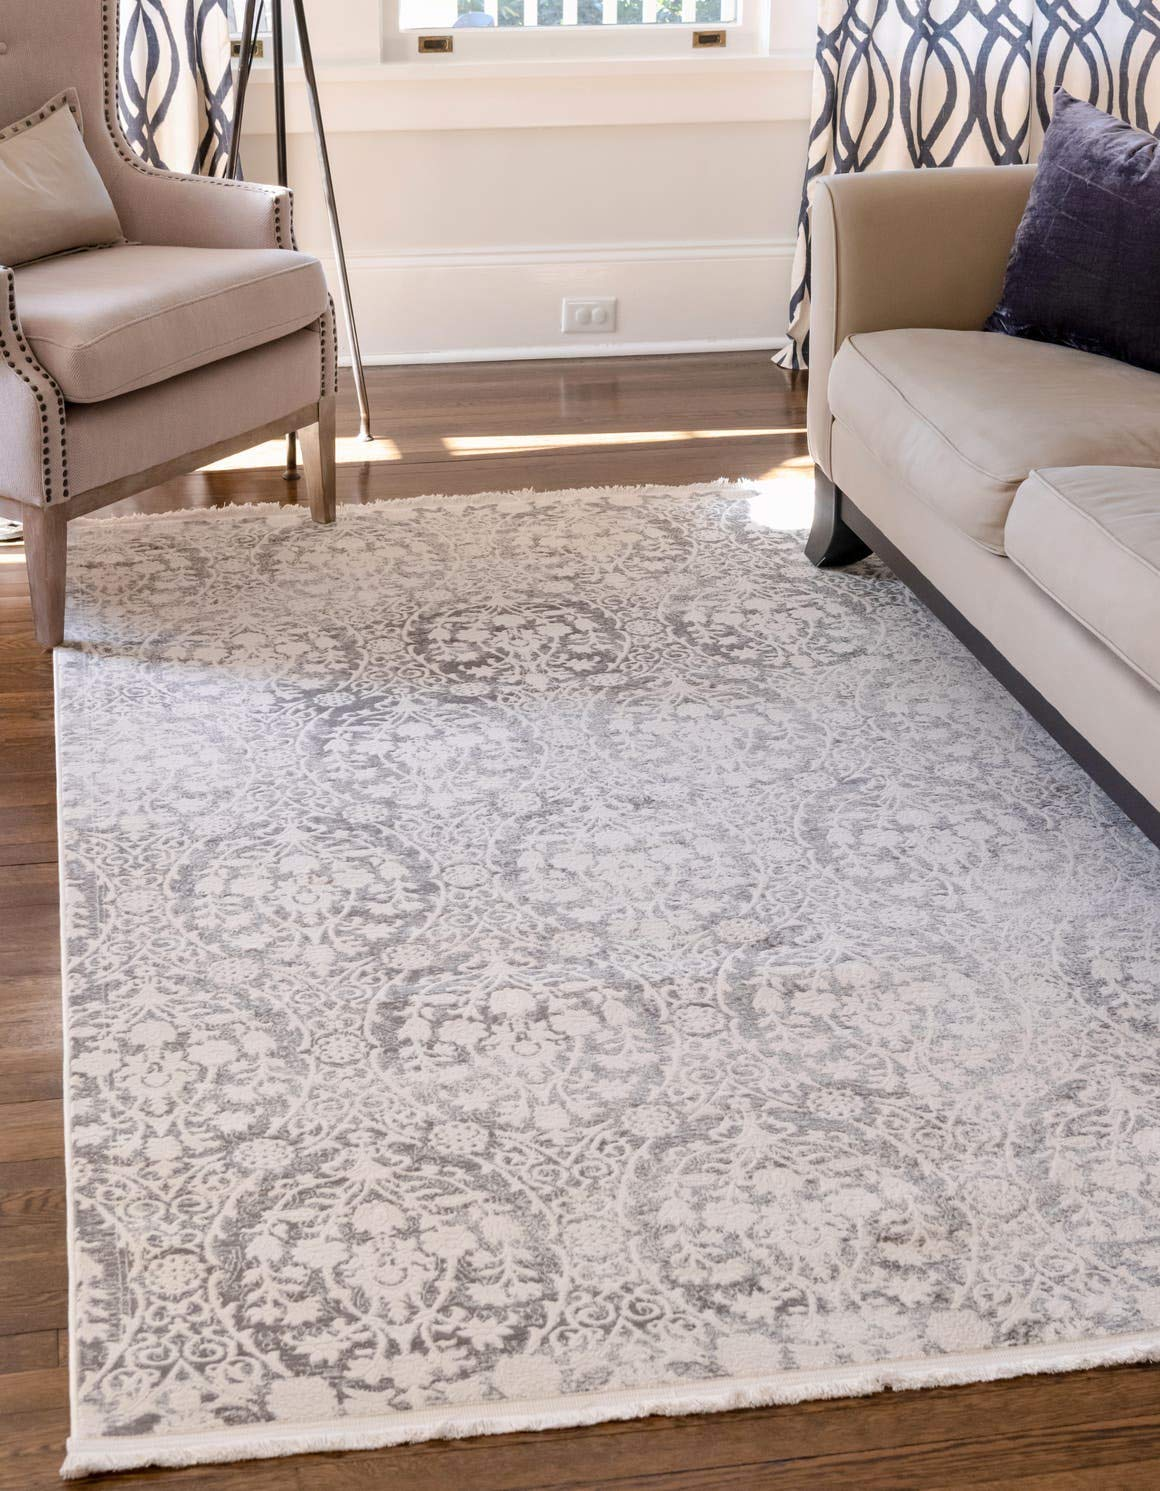 Unique Loom New Classical Collection Traditional Distressed Vintage Classic Light Gray Area Rug 5 0 x 8 0